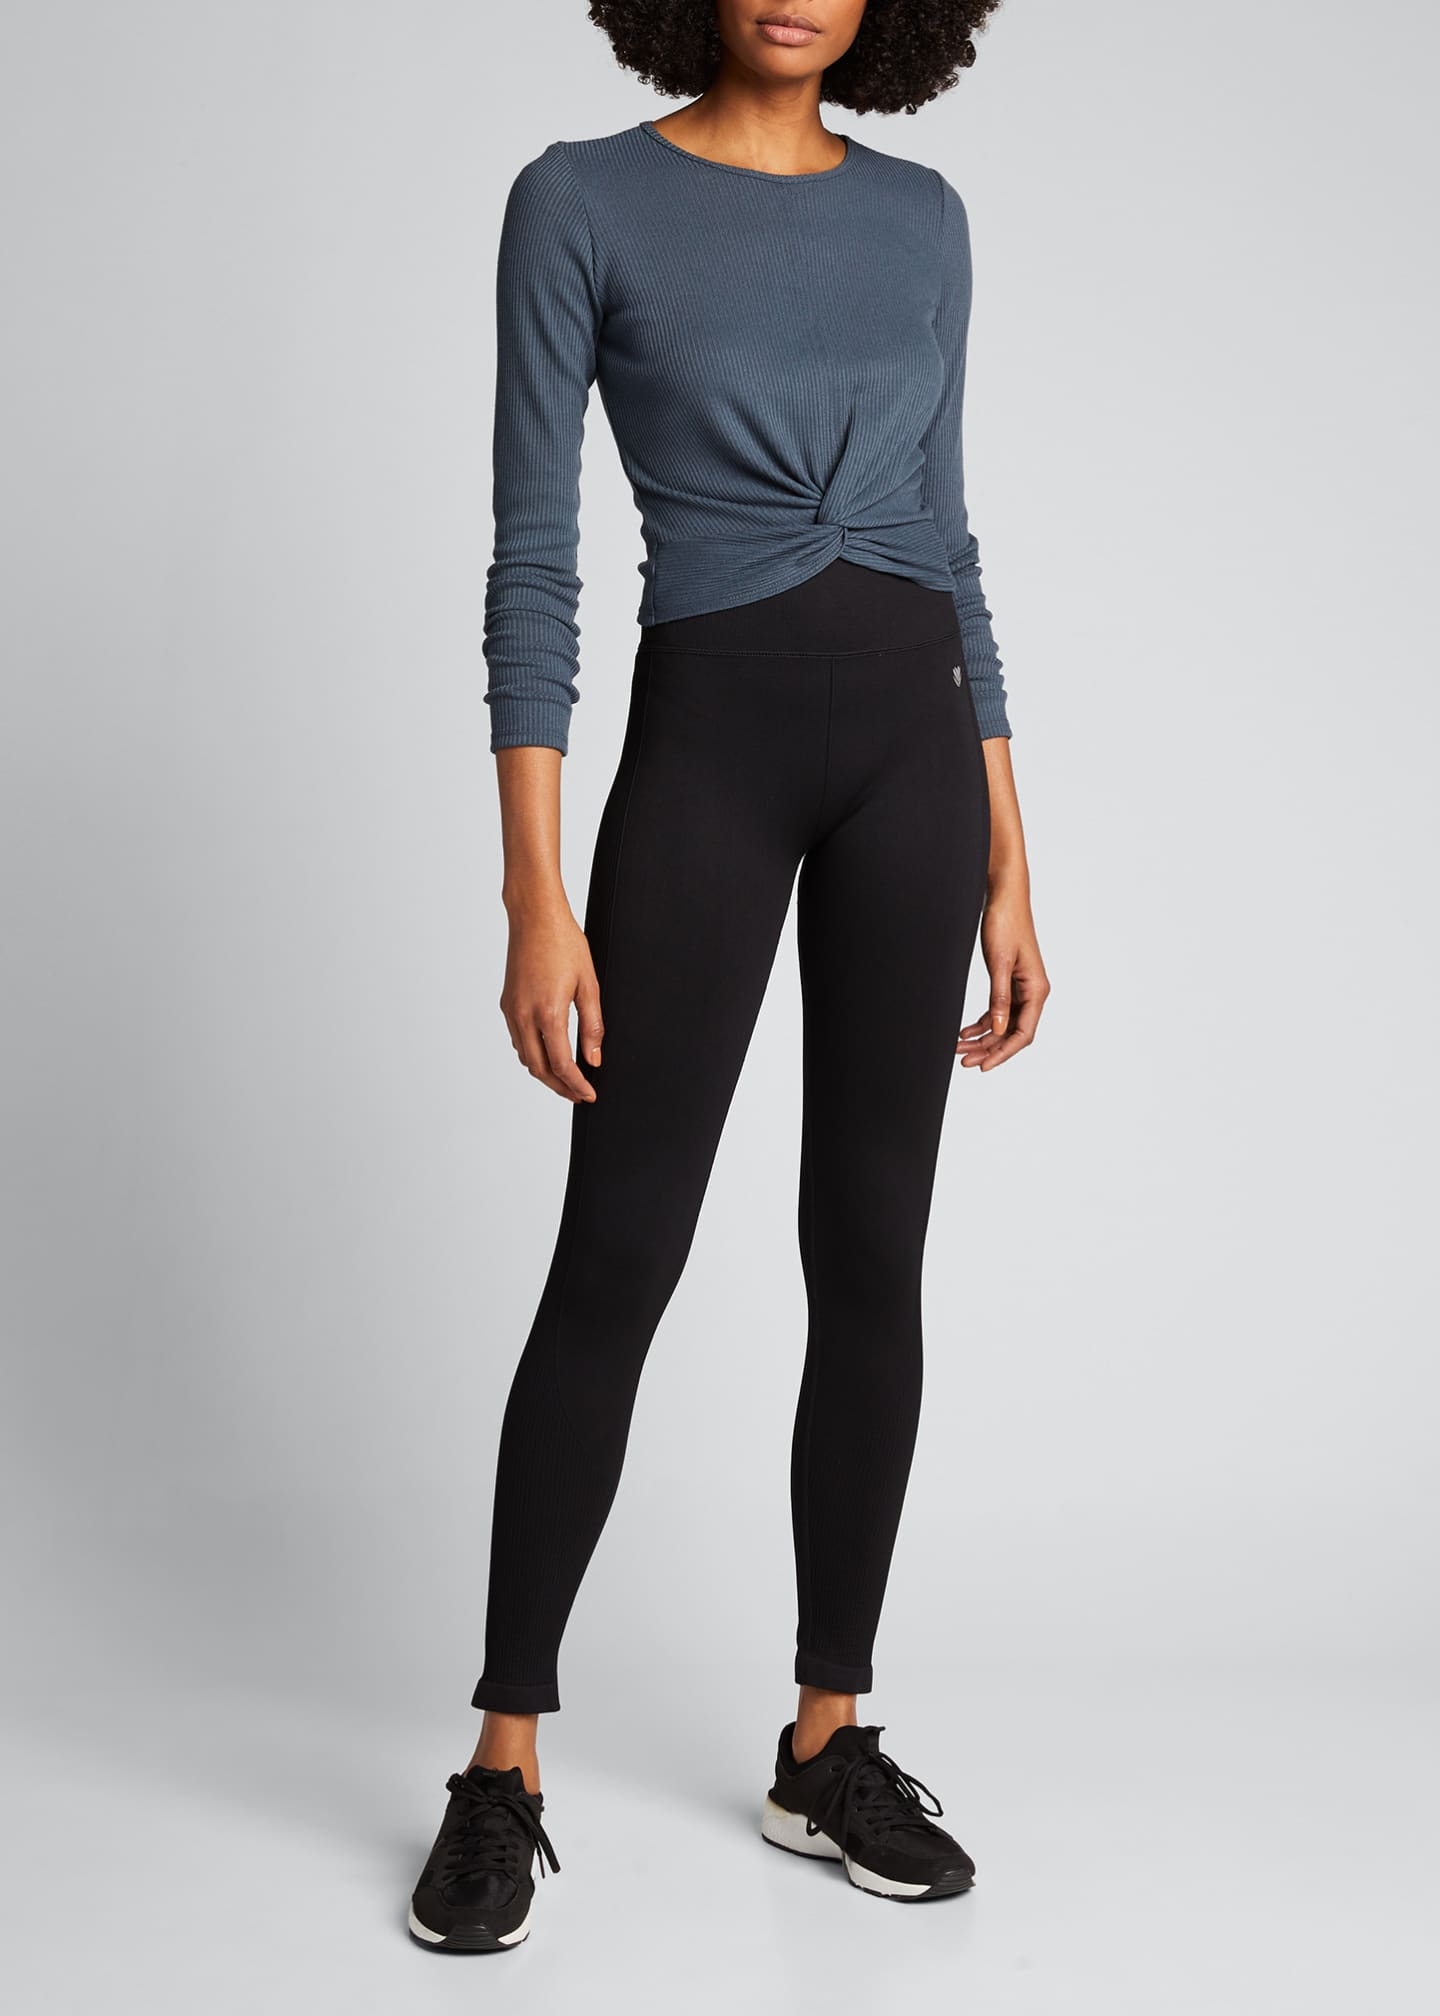 Image 1 of 5: Twirl Long-Sleeve Knot-Front Crop Top